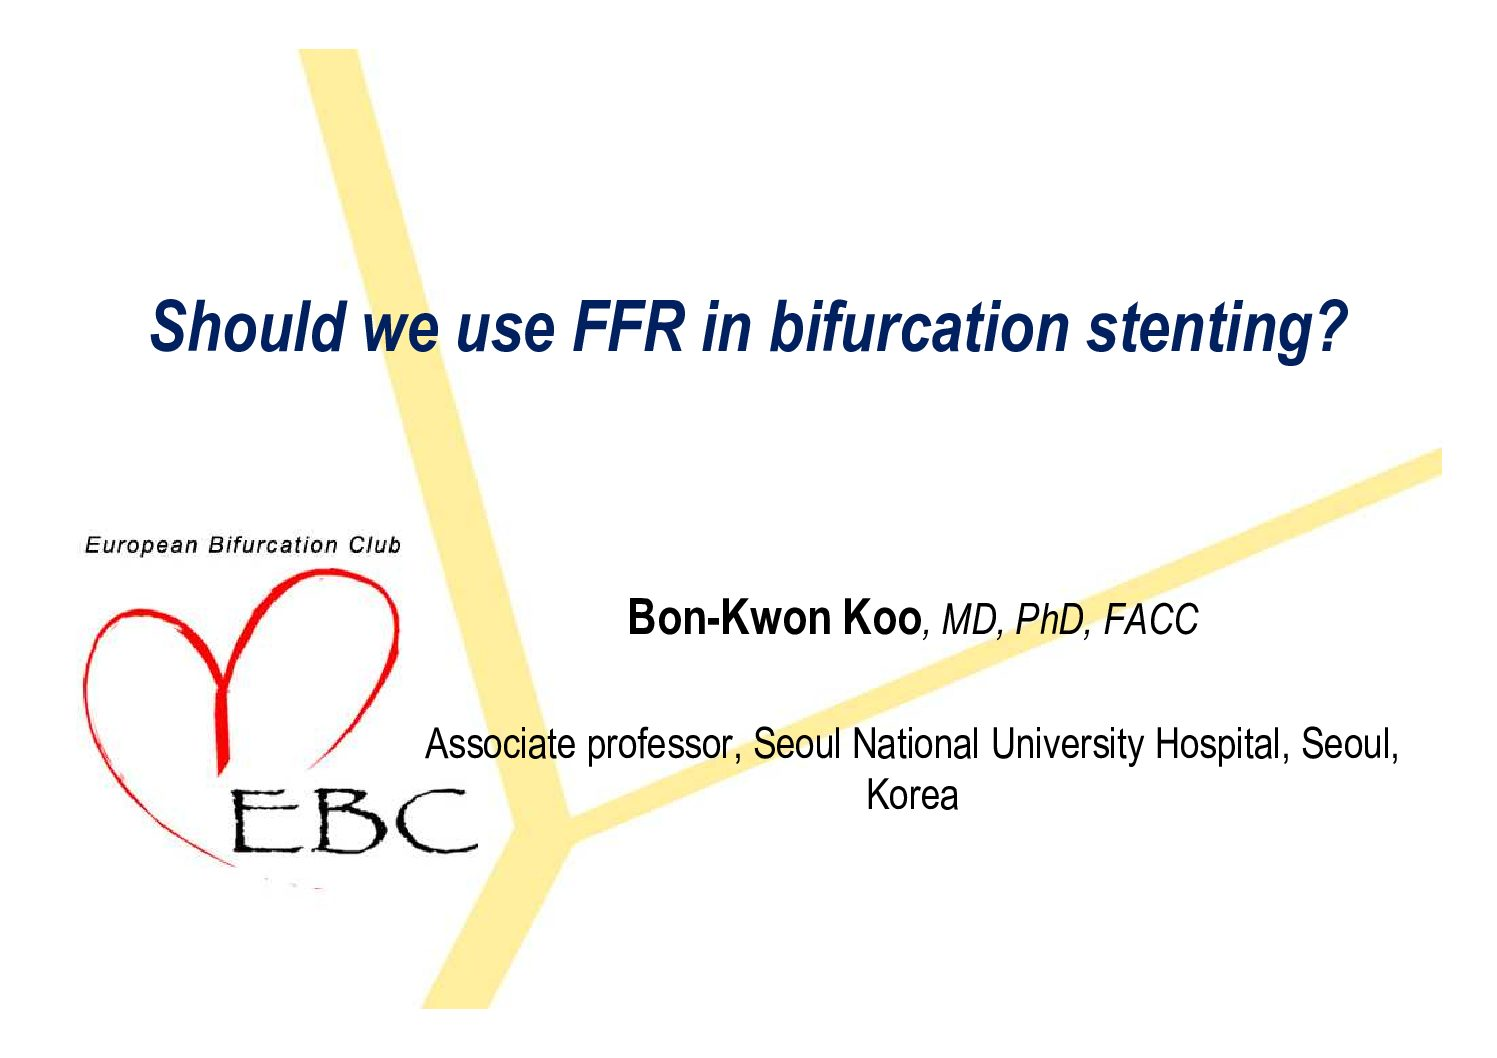 Should we use FFR in bifurcation stenting? – Yes